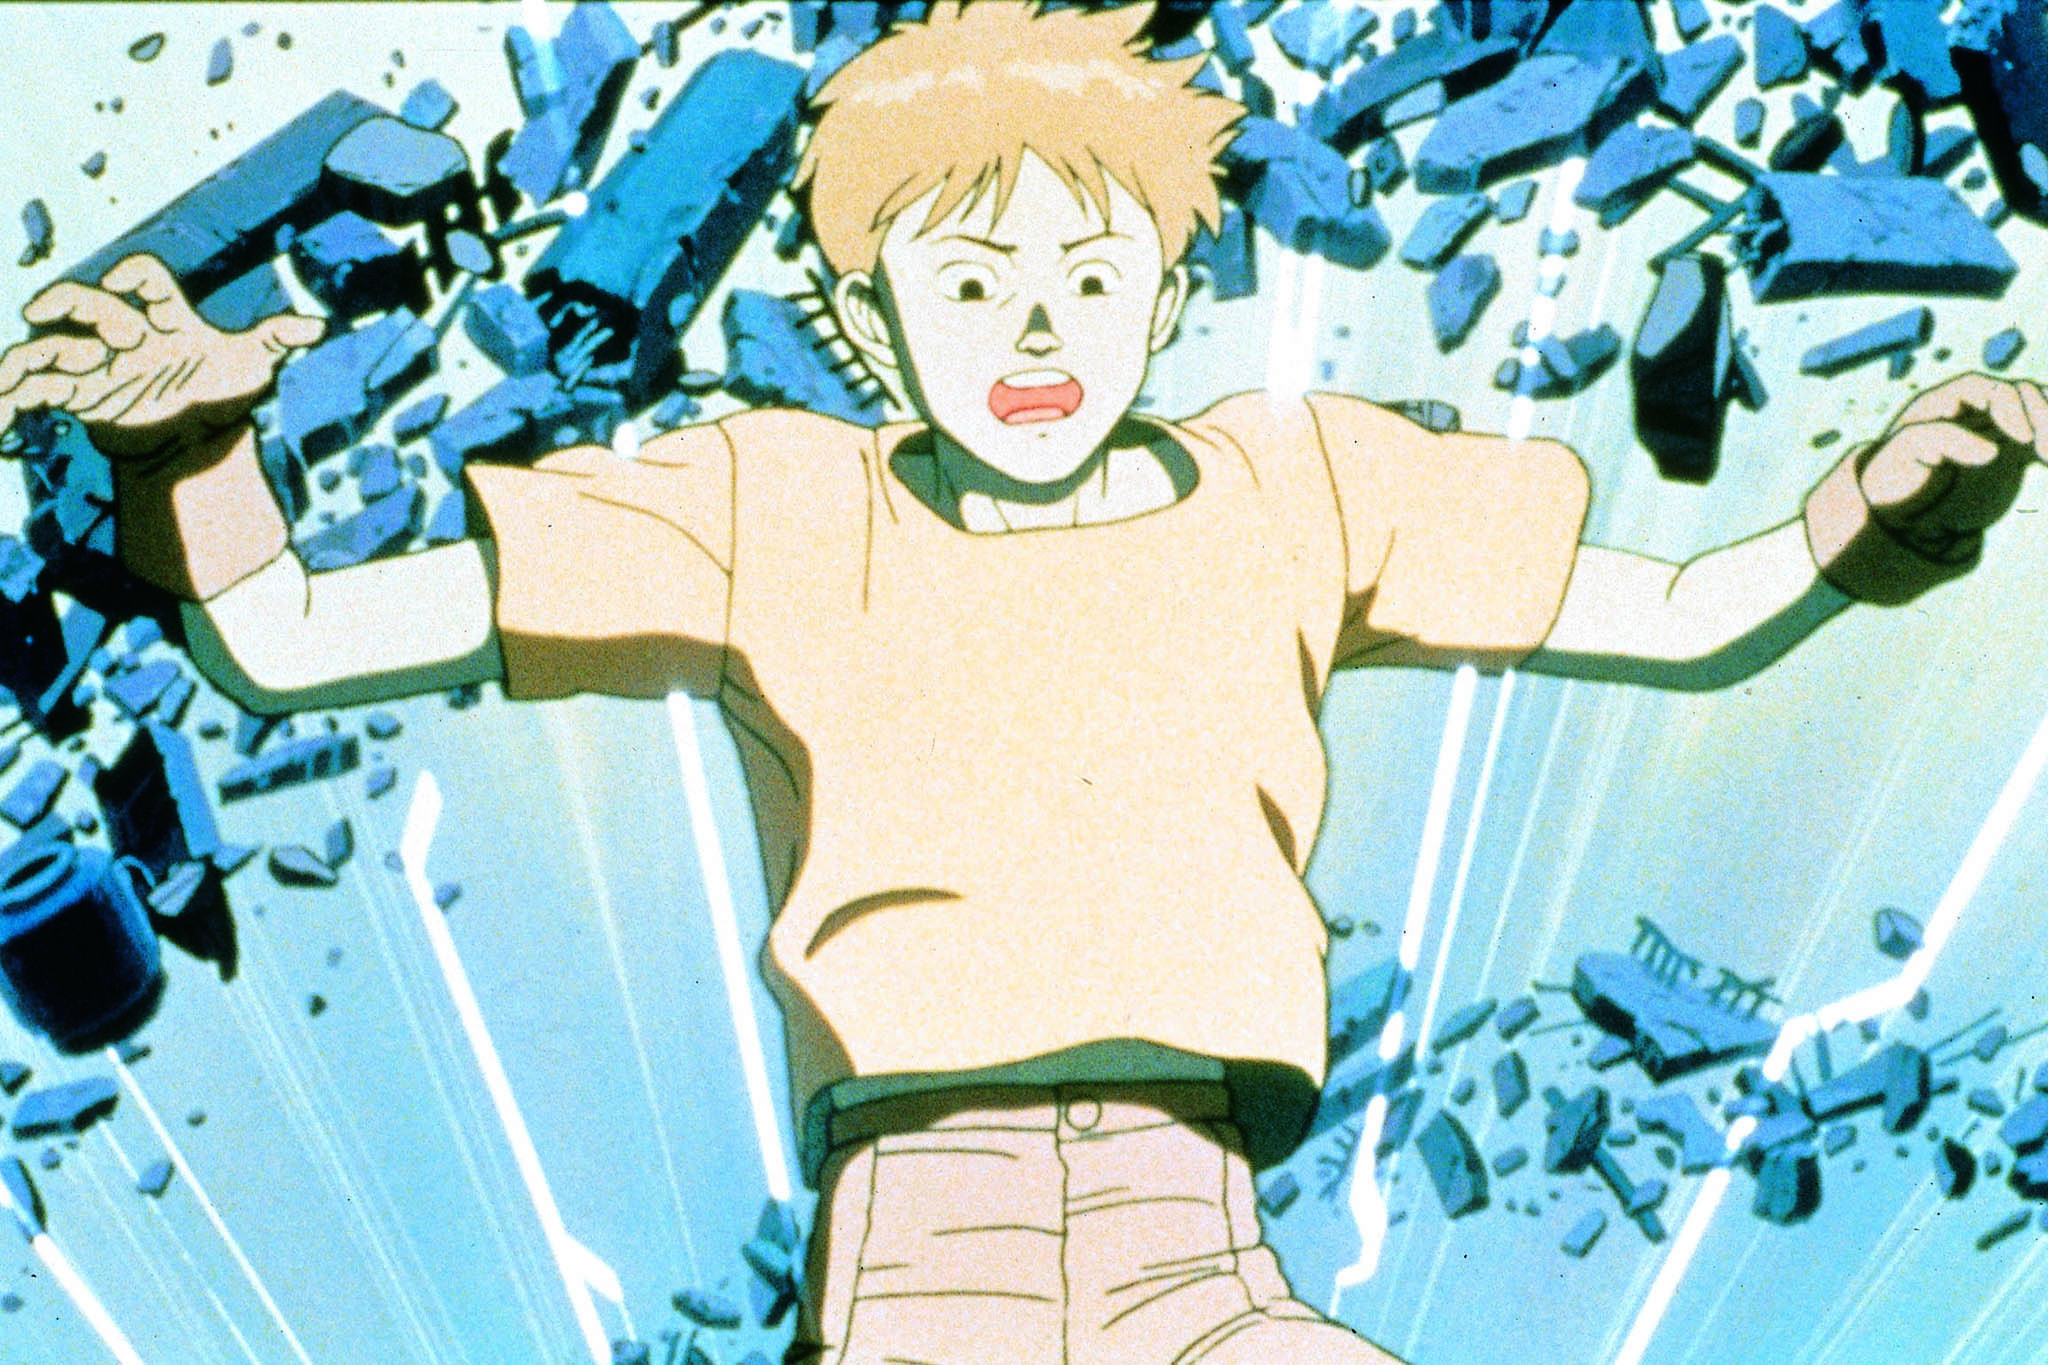 Best animated films: Akira